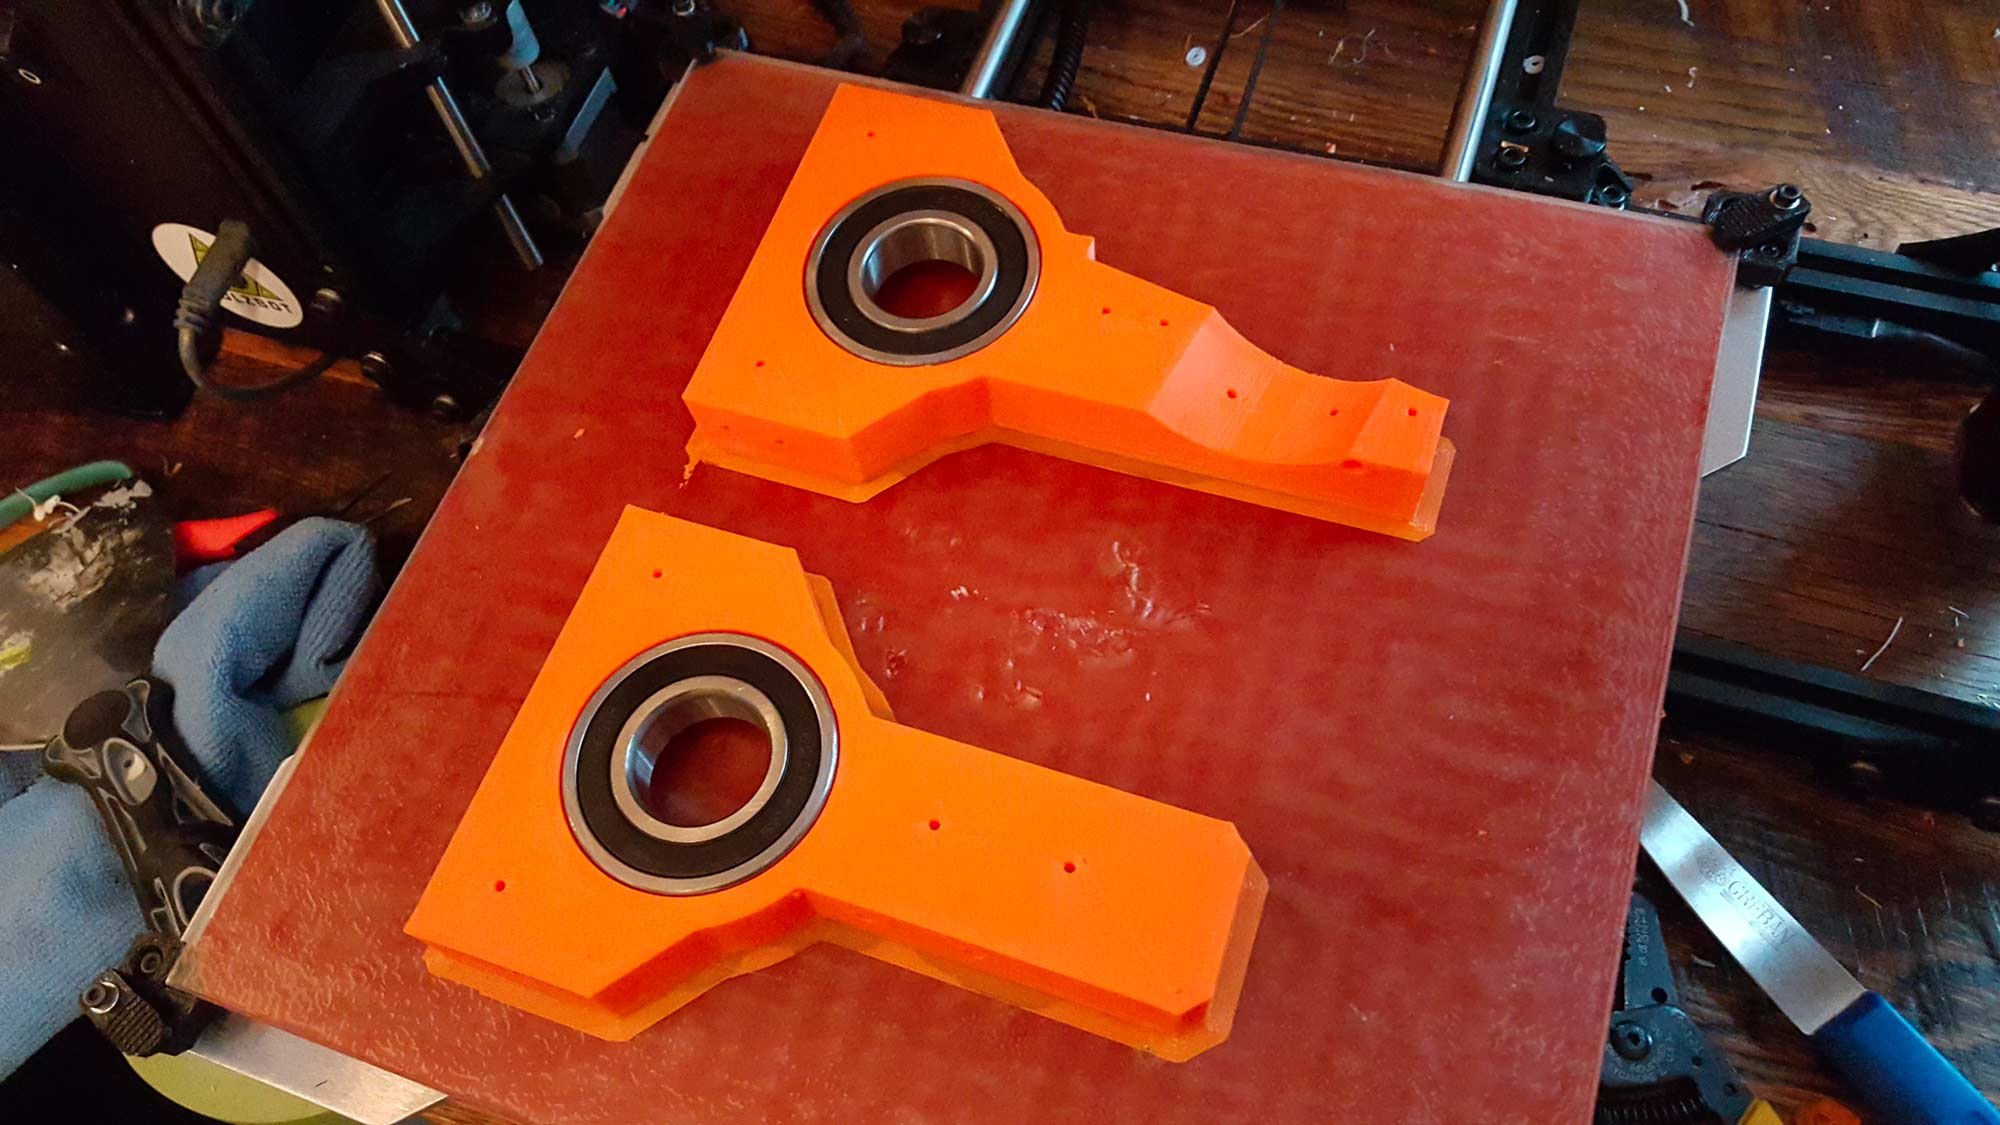 """This print I am super proud of and have to give myself a little pat on the back. I printed the """"trousers"""" which have a recess for a bearing that will go around main axis. As soon as the print finished I test fitted the bearings and thankfully they fit. Then the genius part....I decided to leave the bearings in the hot print on the bed. As the plastic cooled it contracted around the bearing and the bearings basically installed themselves. Those suckers are in there for good with no glue or anything."""